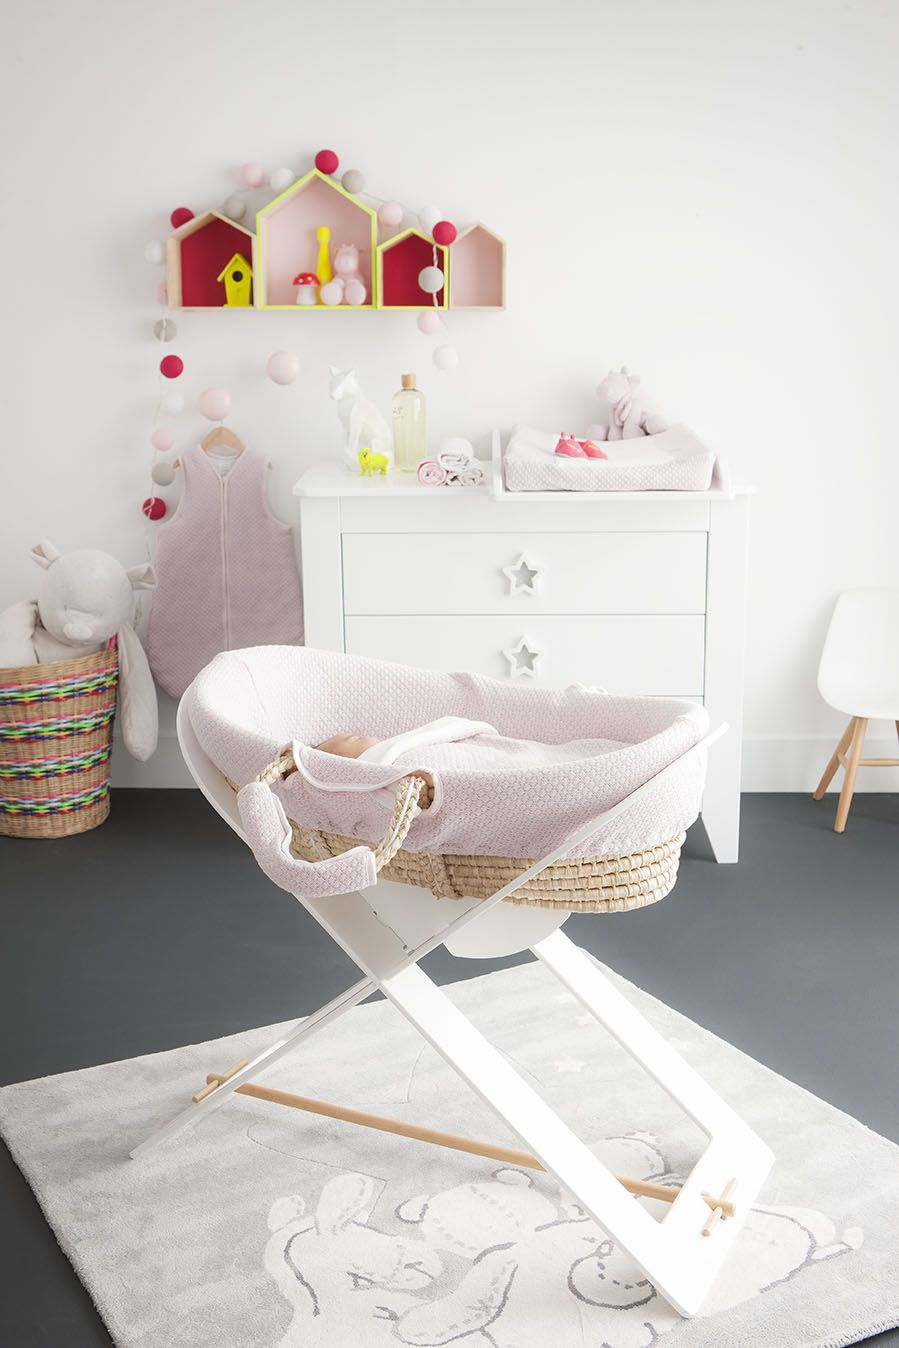 The Sublime Collection Noukie S Pink And Yellow Baby Room For Little Girls Chambre Bebe Rose E Chambre Bebe Jaune Et Rose Chambre Bebe Rose Chambre Bebe